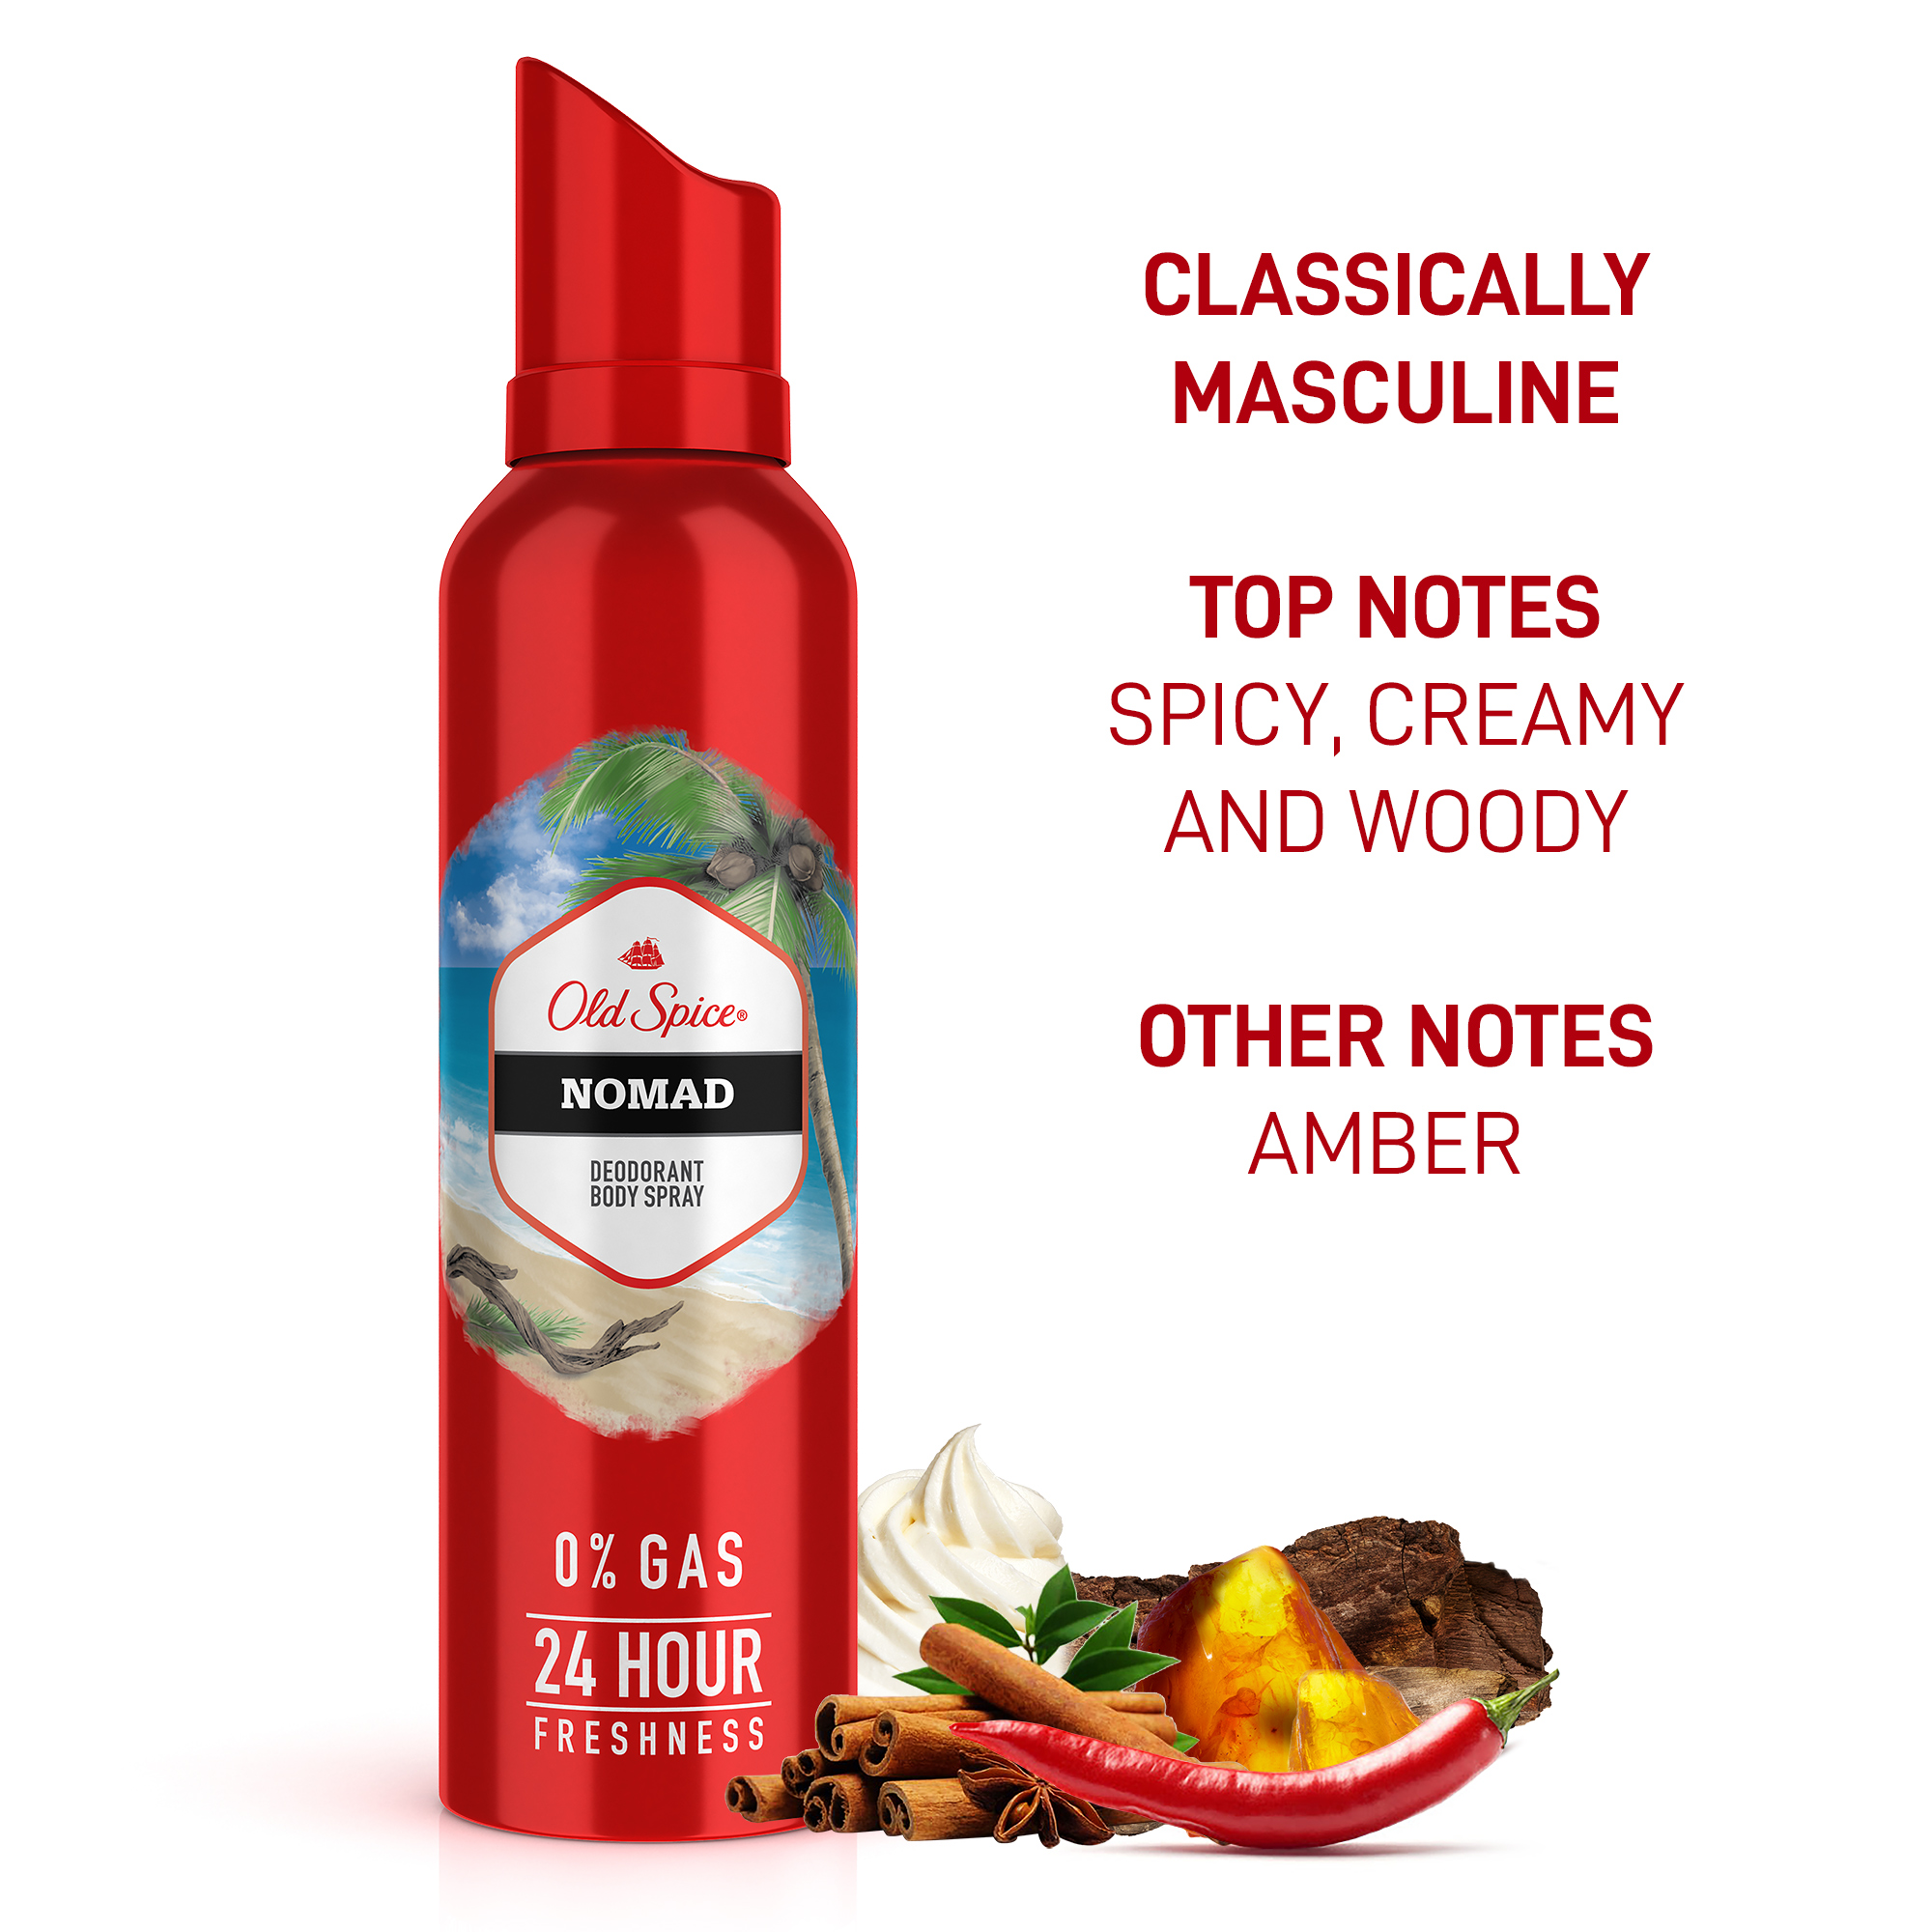 Old Spice Nomad No Gas Deodorant Body Spray Perfume, 140 ml